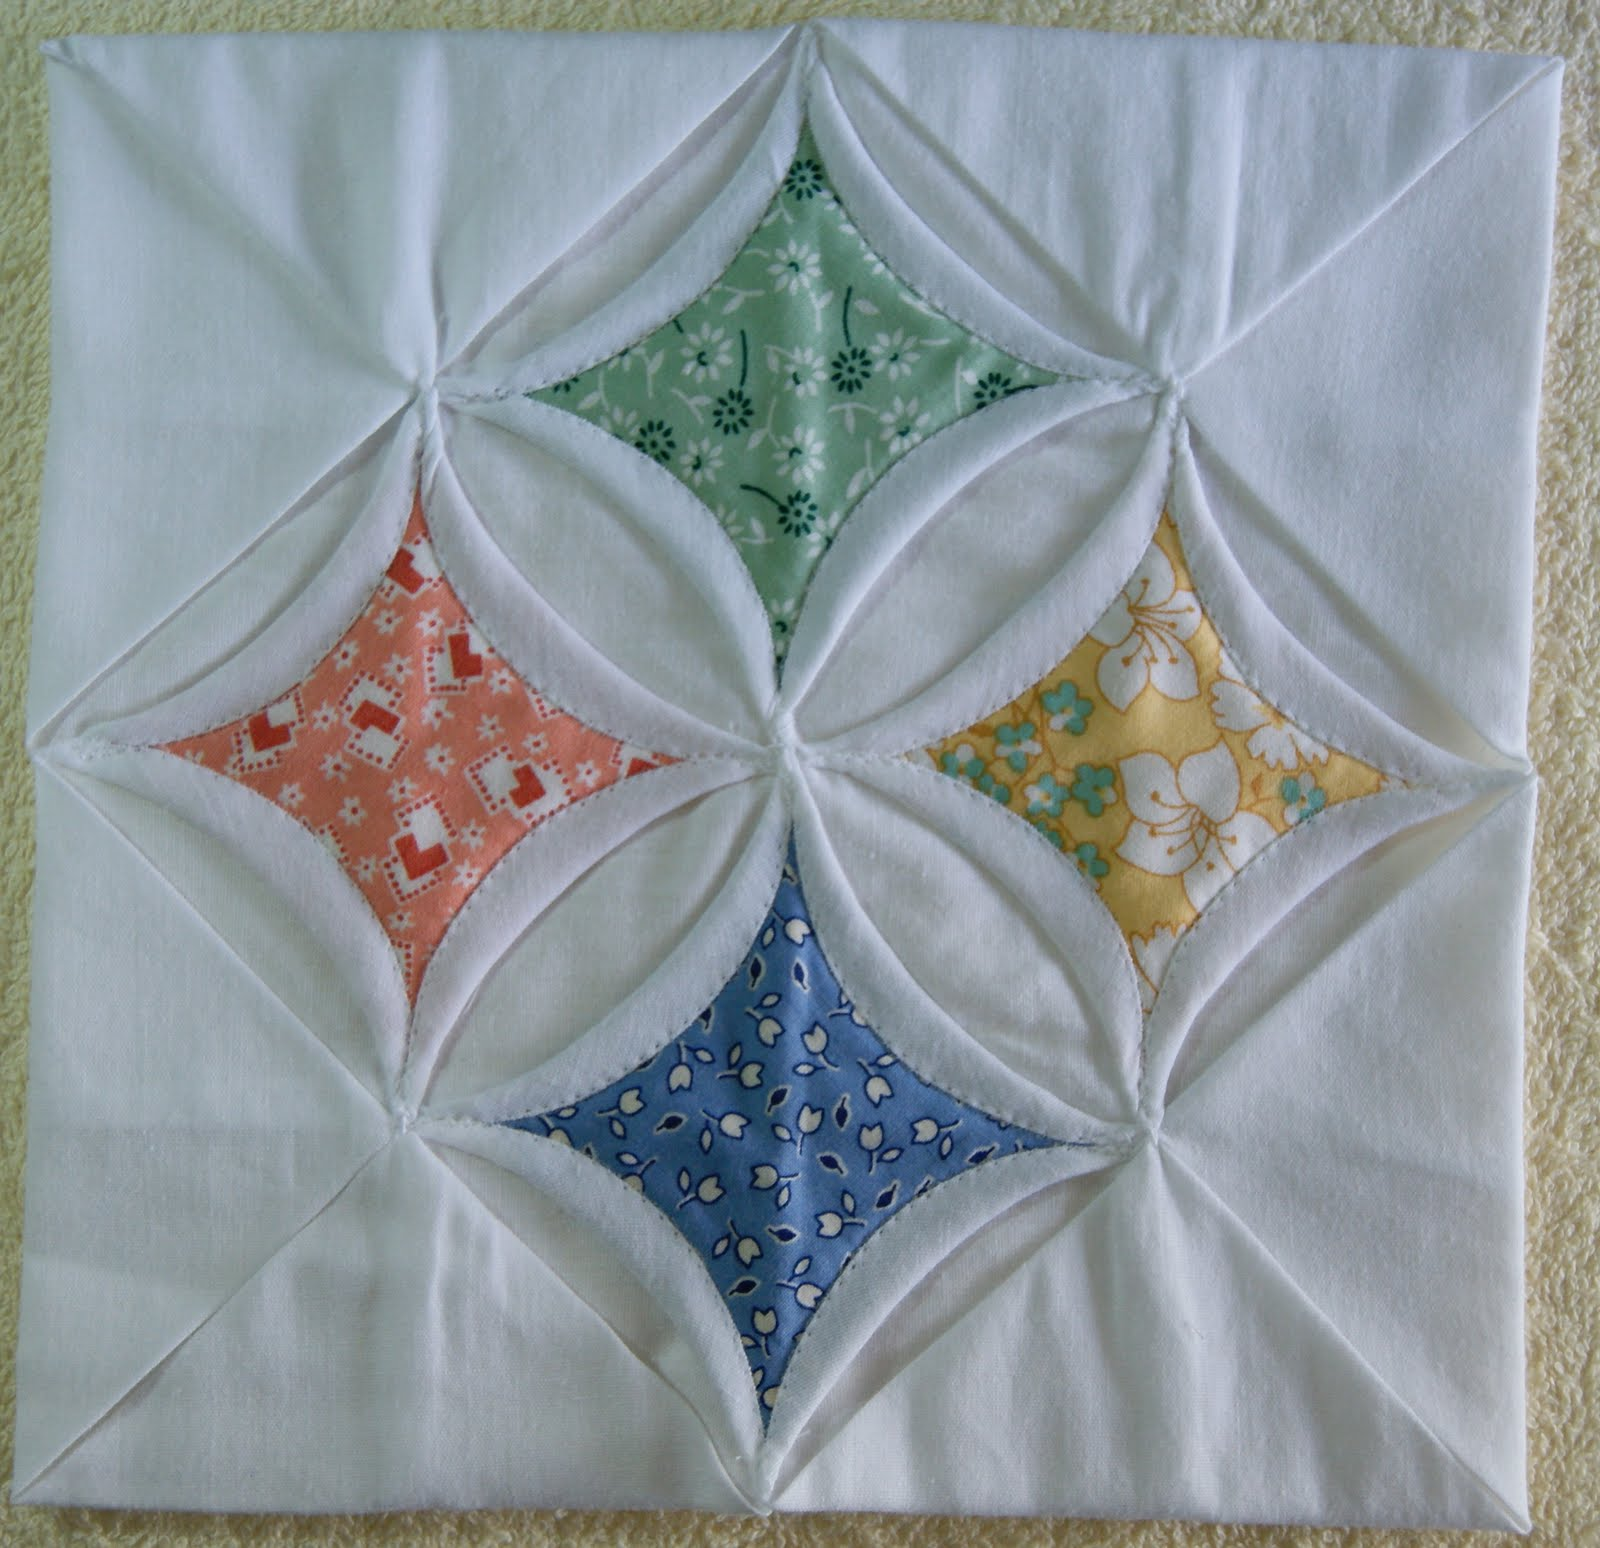 One Piece at a Time: Cathedral Window Quilt